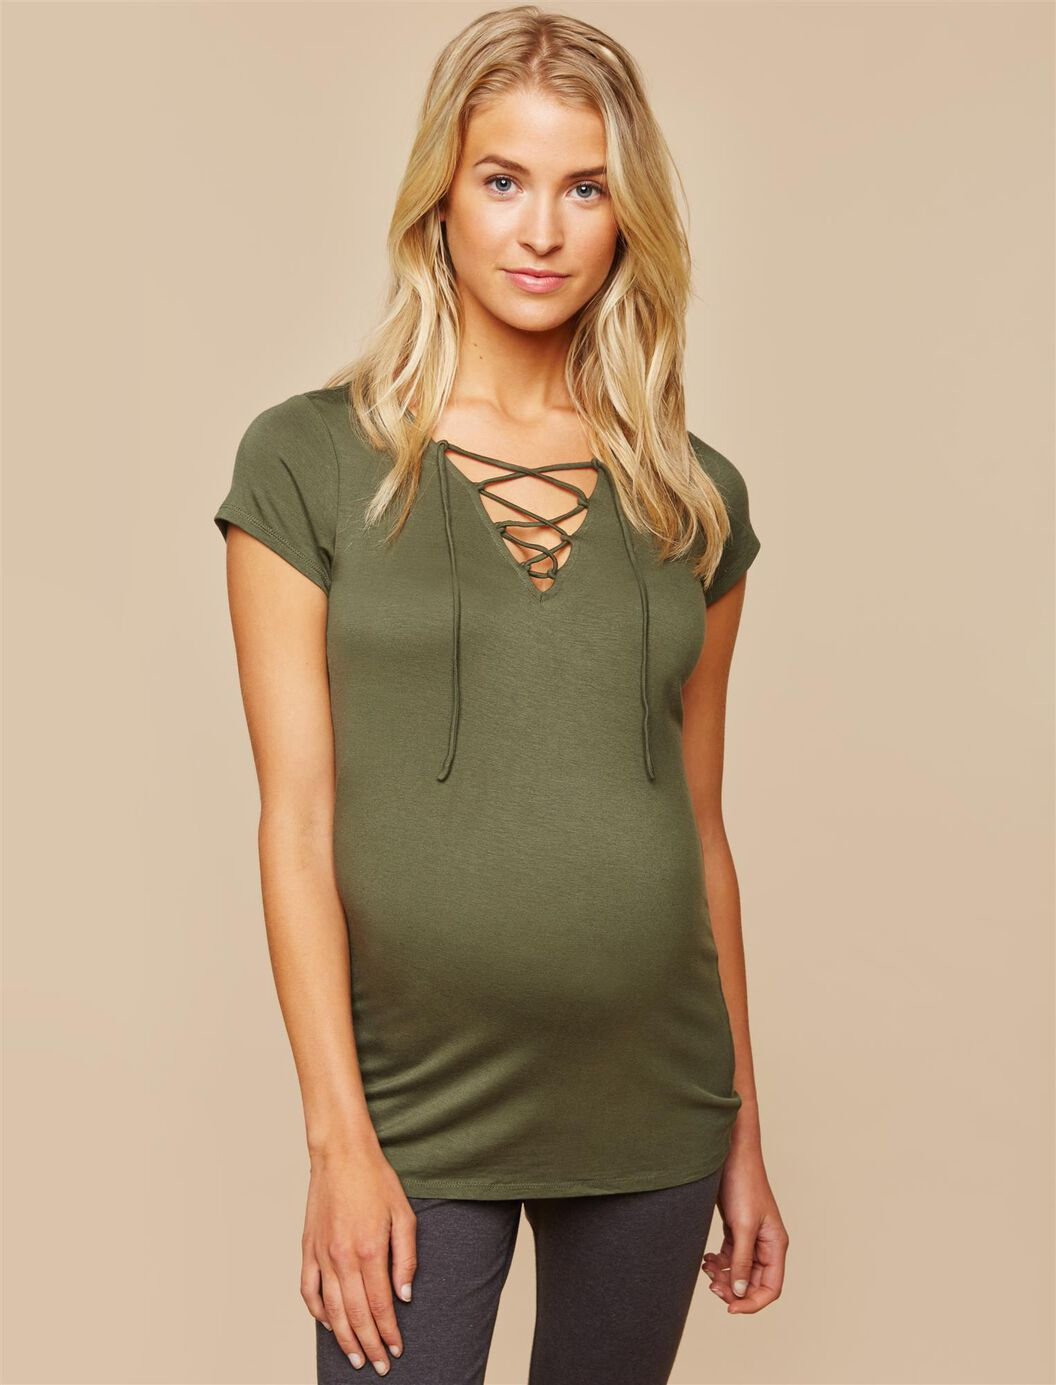 Tie Front Maternity Top at Motherhood Maternity in Victor, NY   Tuggl